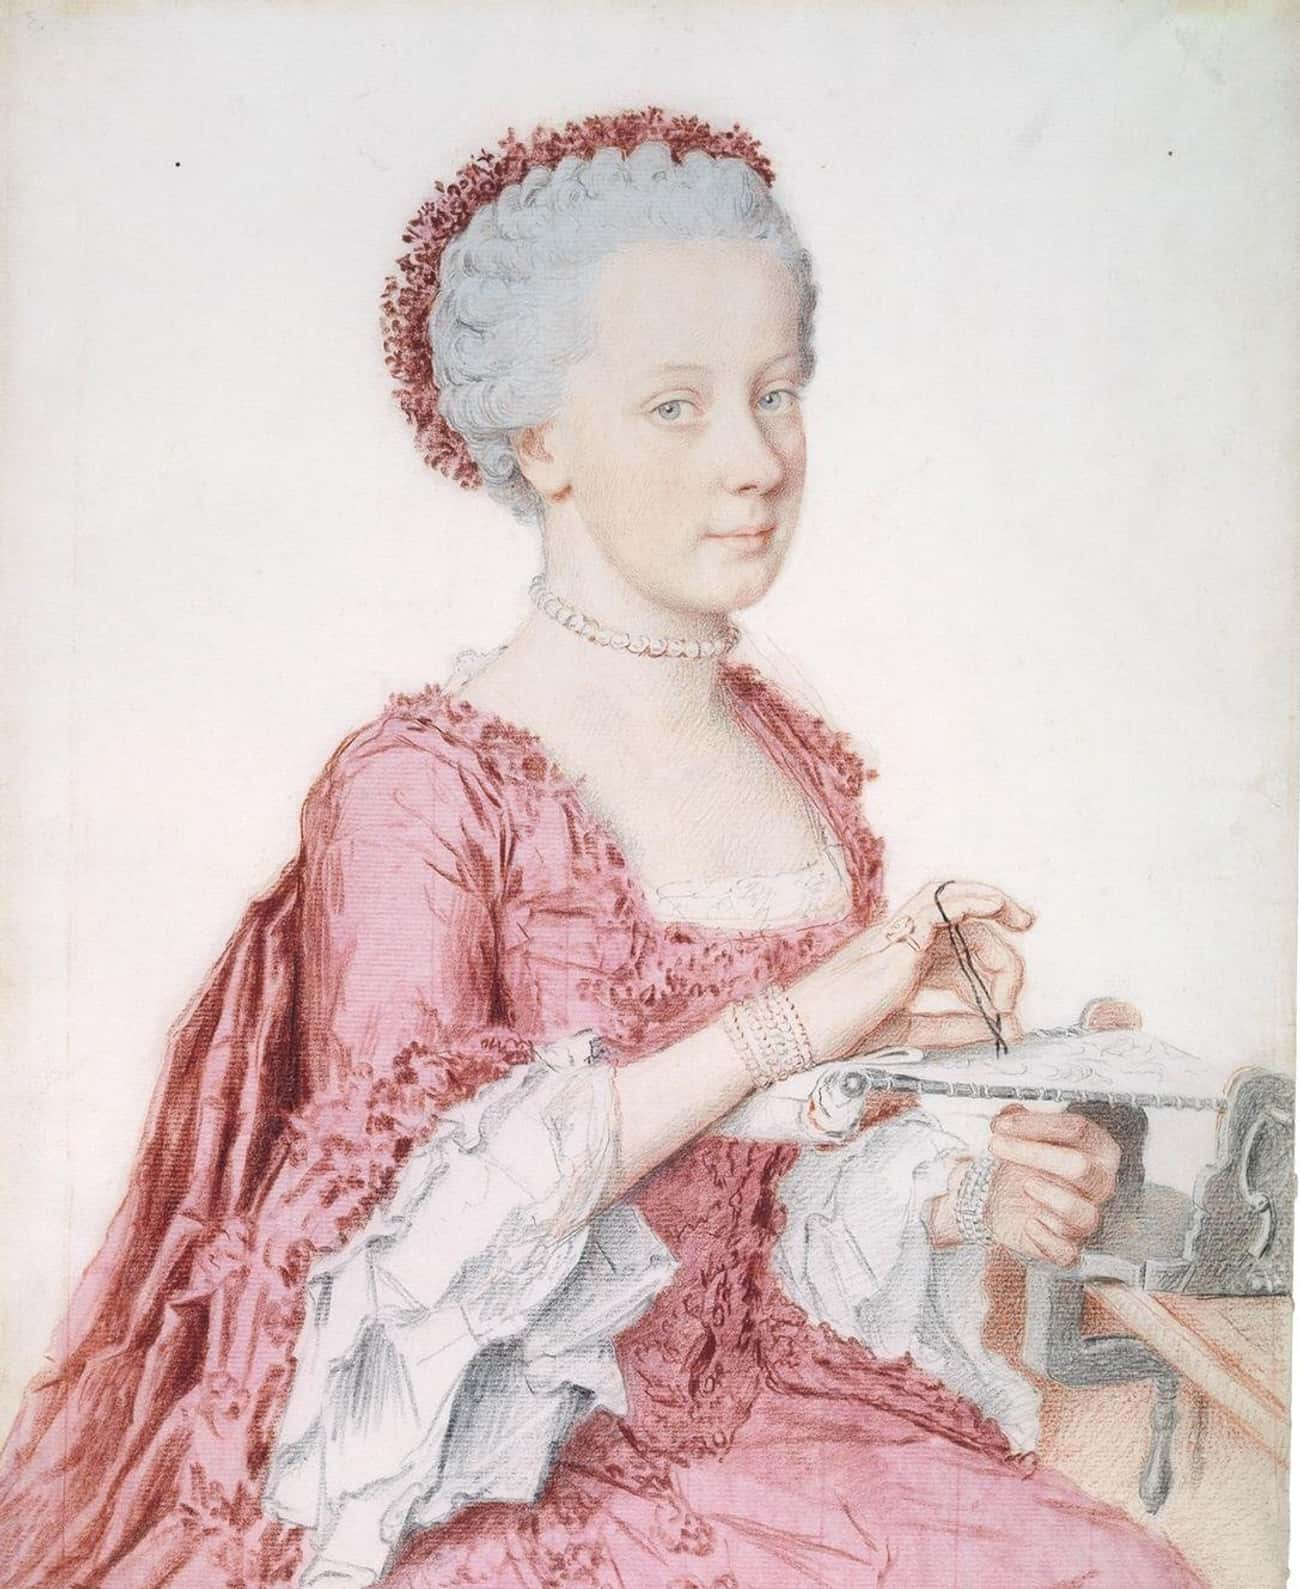 Maria Theresa Supposedly Told Her Daughter Maria Amalia, 'The Less You Speak The Better'